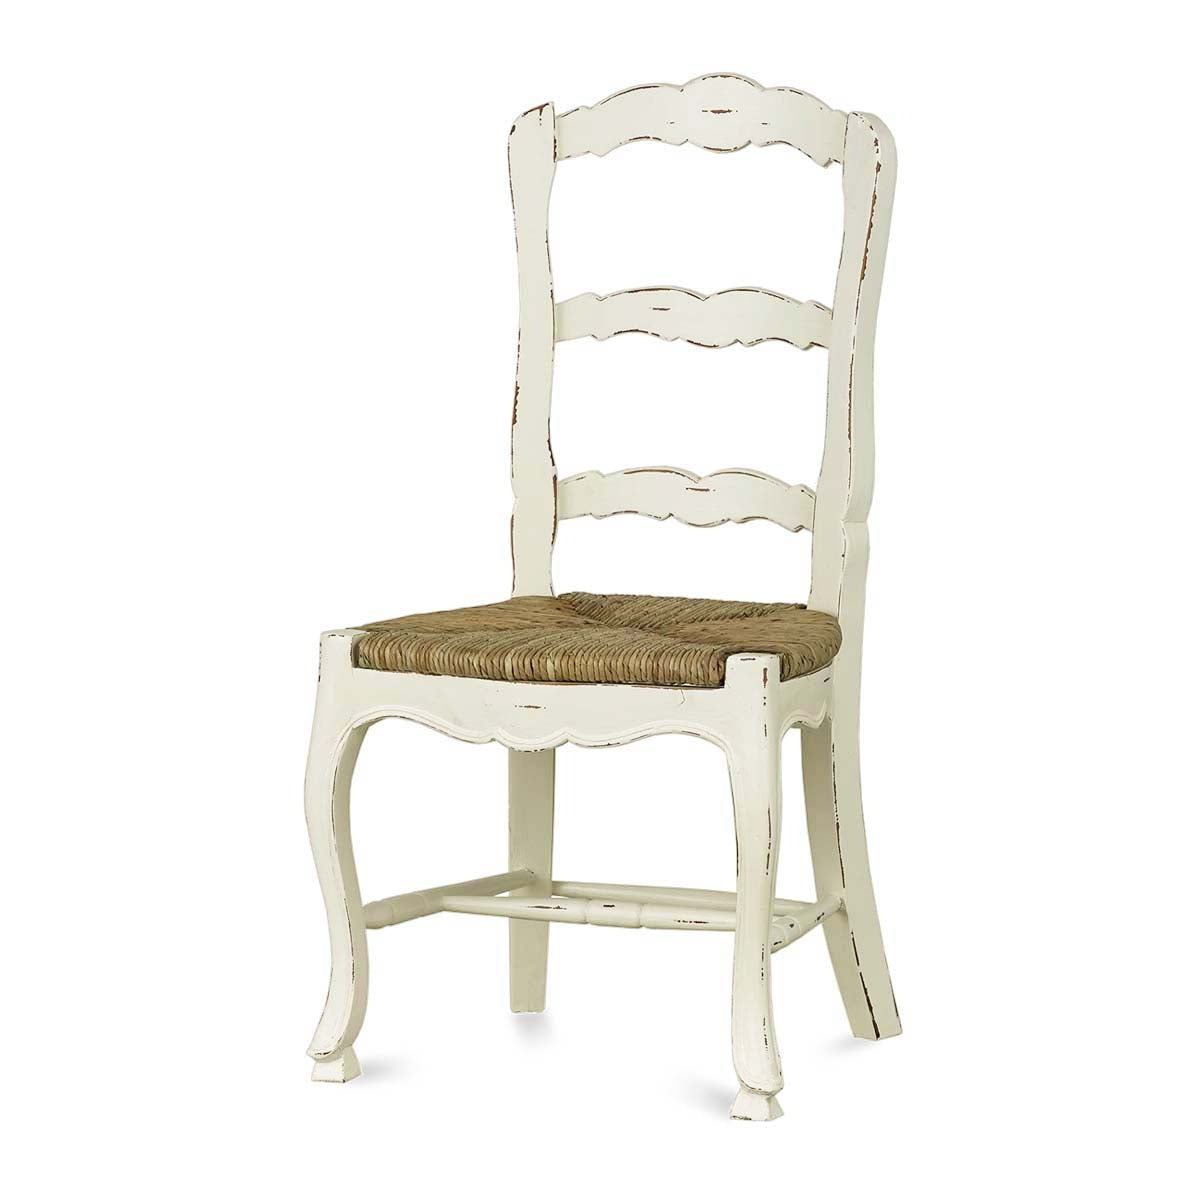 French Country Ladderback Dining Chair Set of 4 White